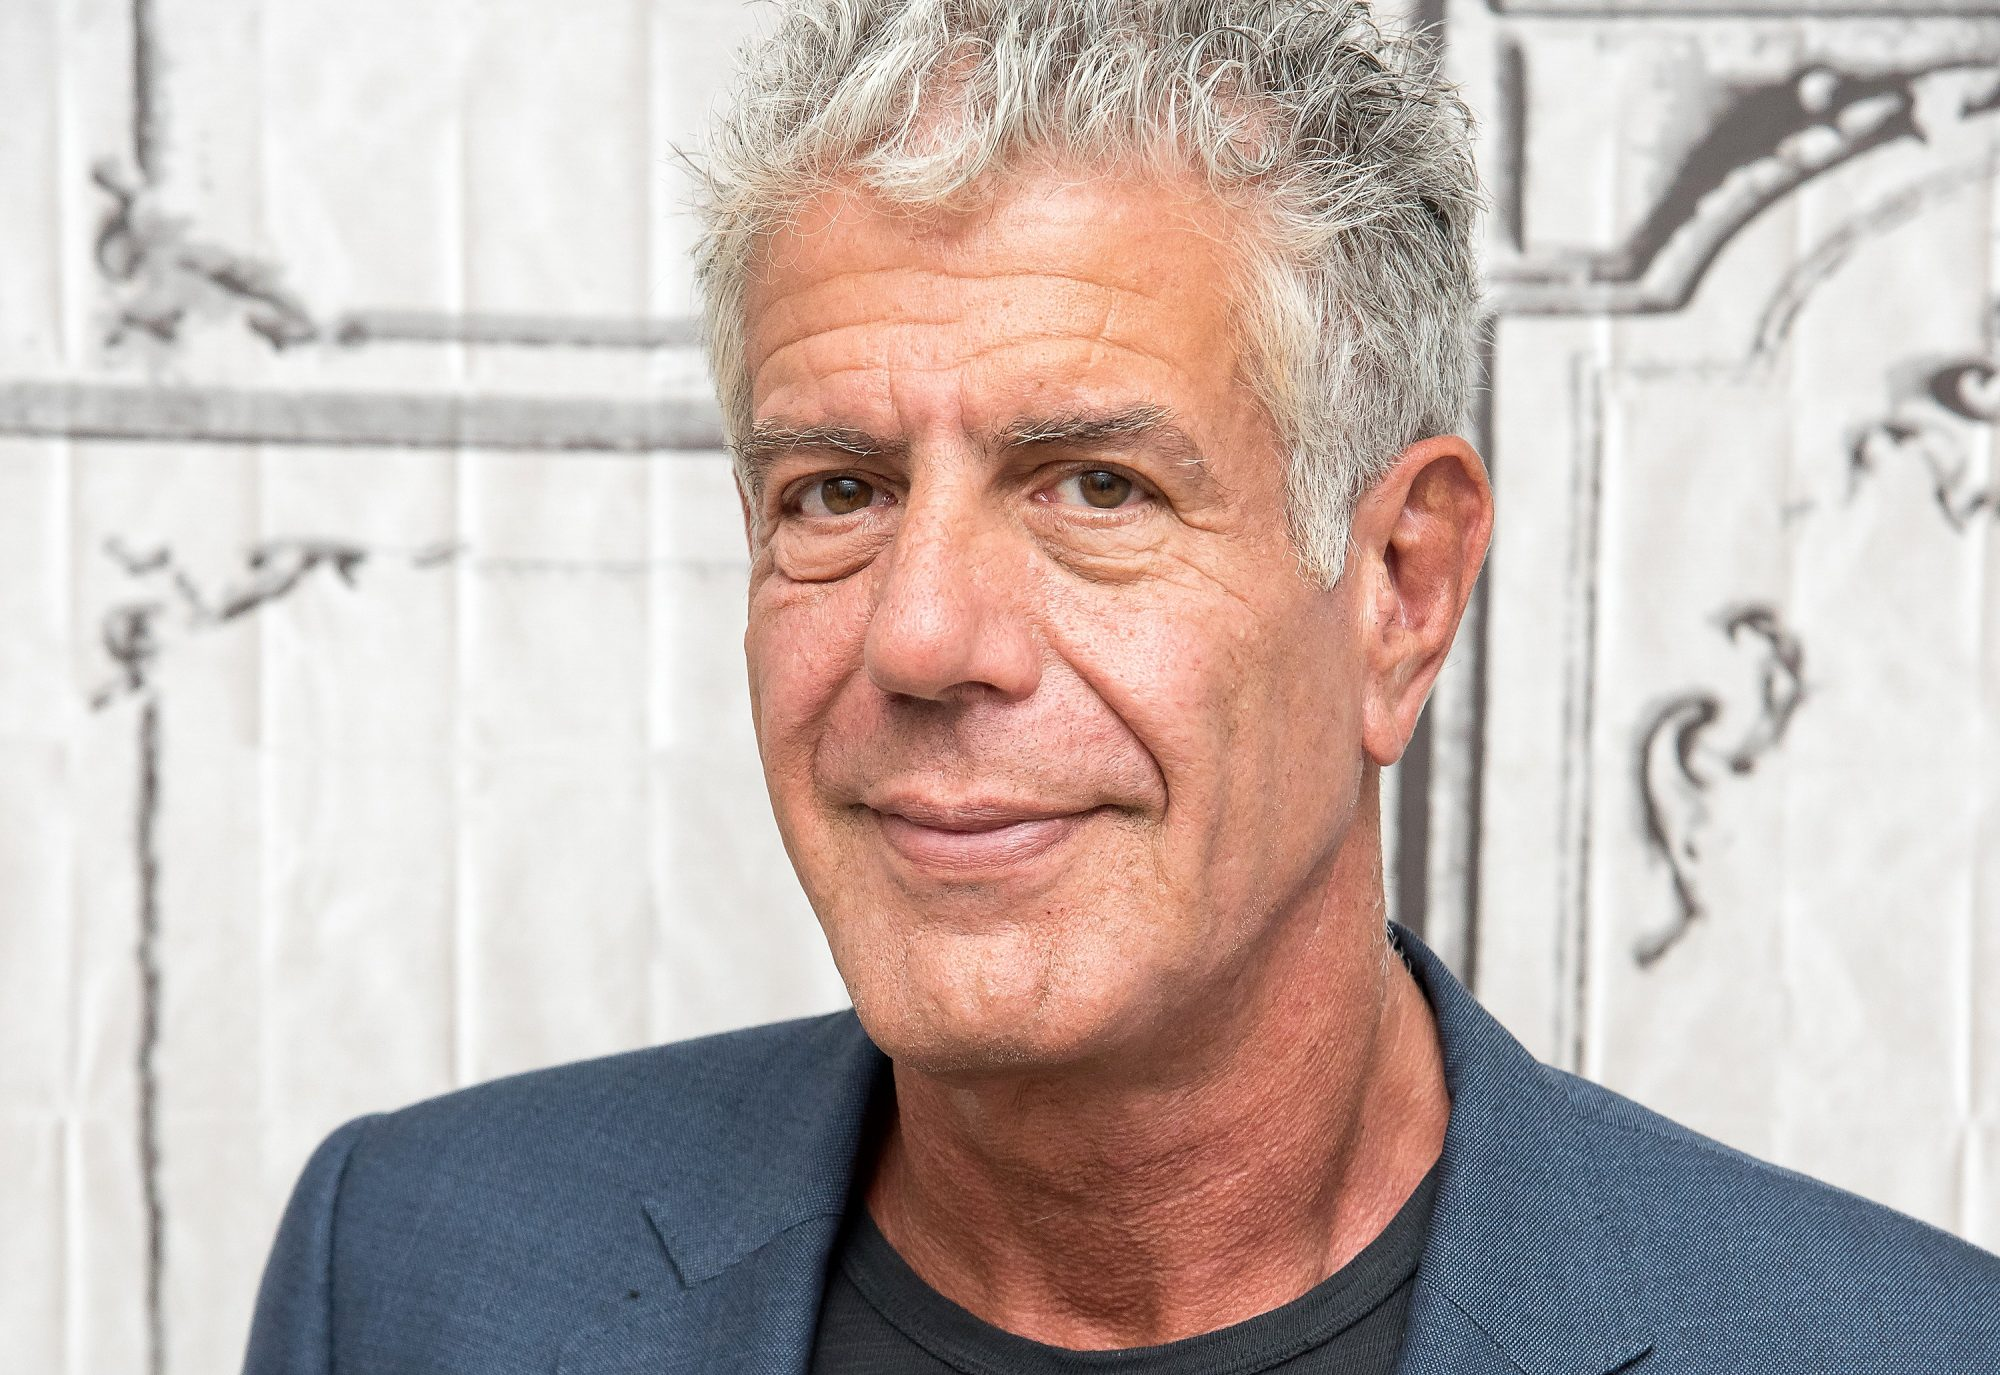 Anthony Bourdain Wins Posthumous Emmy for Parts Unknown Over a Year After His Death